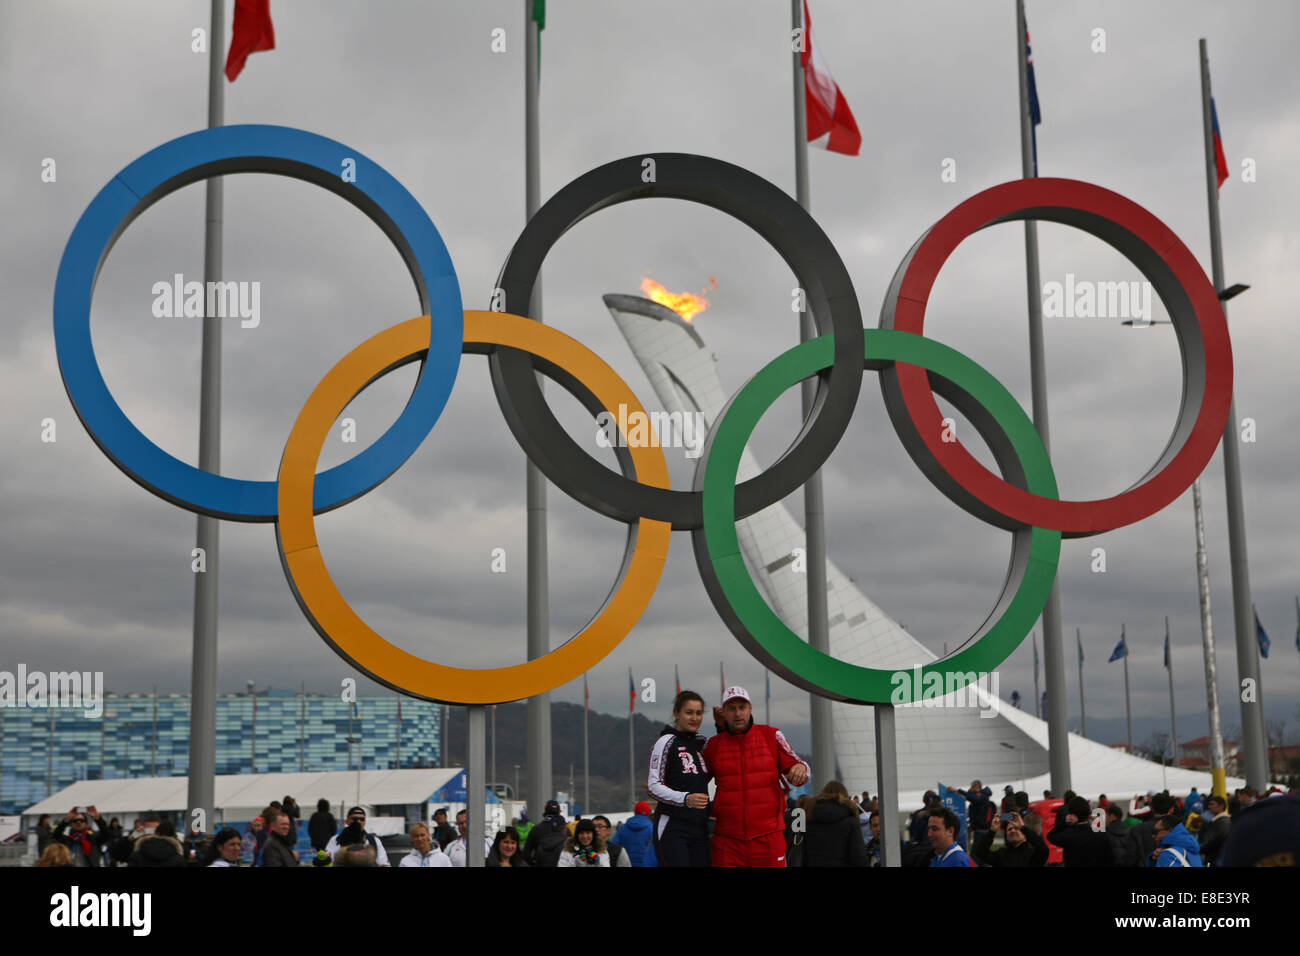 Olympic rings with Sochi flame in the background 2014 - Stock Image